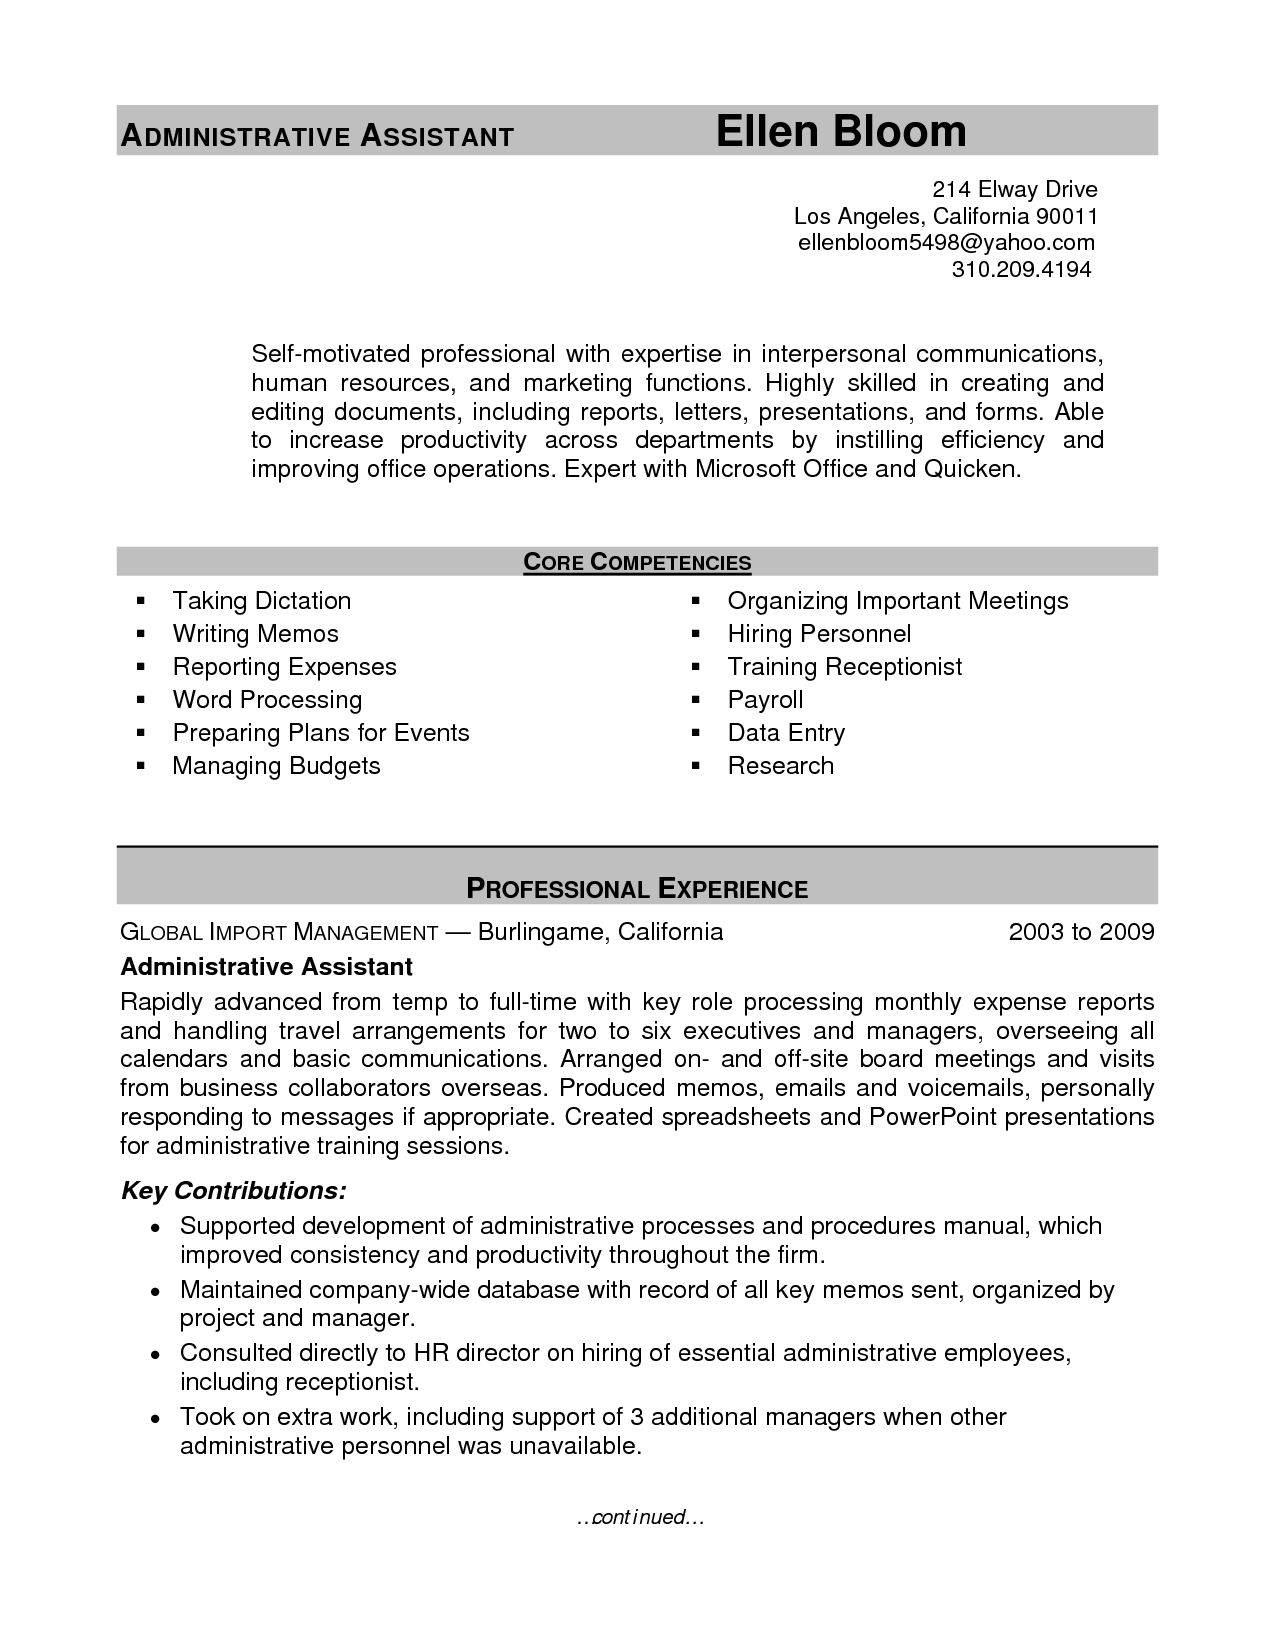 Resume Objective For Administrative Assistant Sample Admin Resume Pdf Systems Administrator Template For